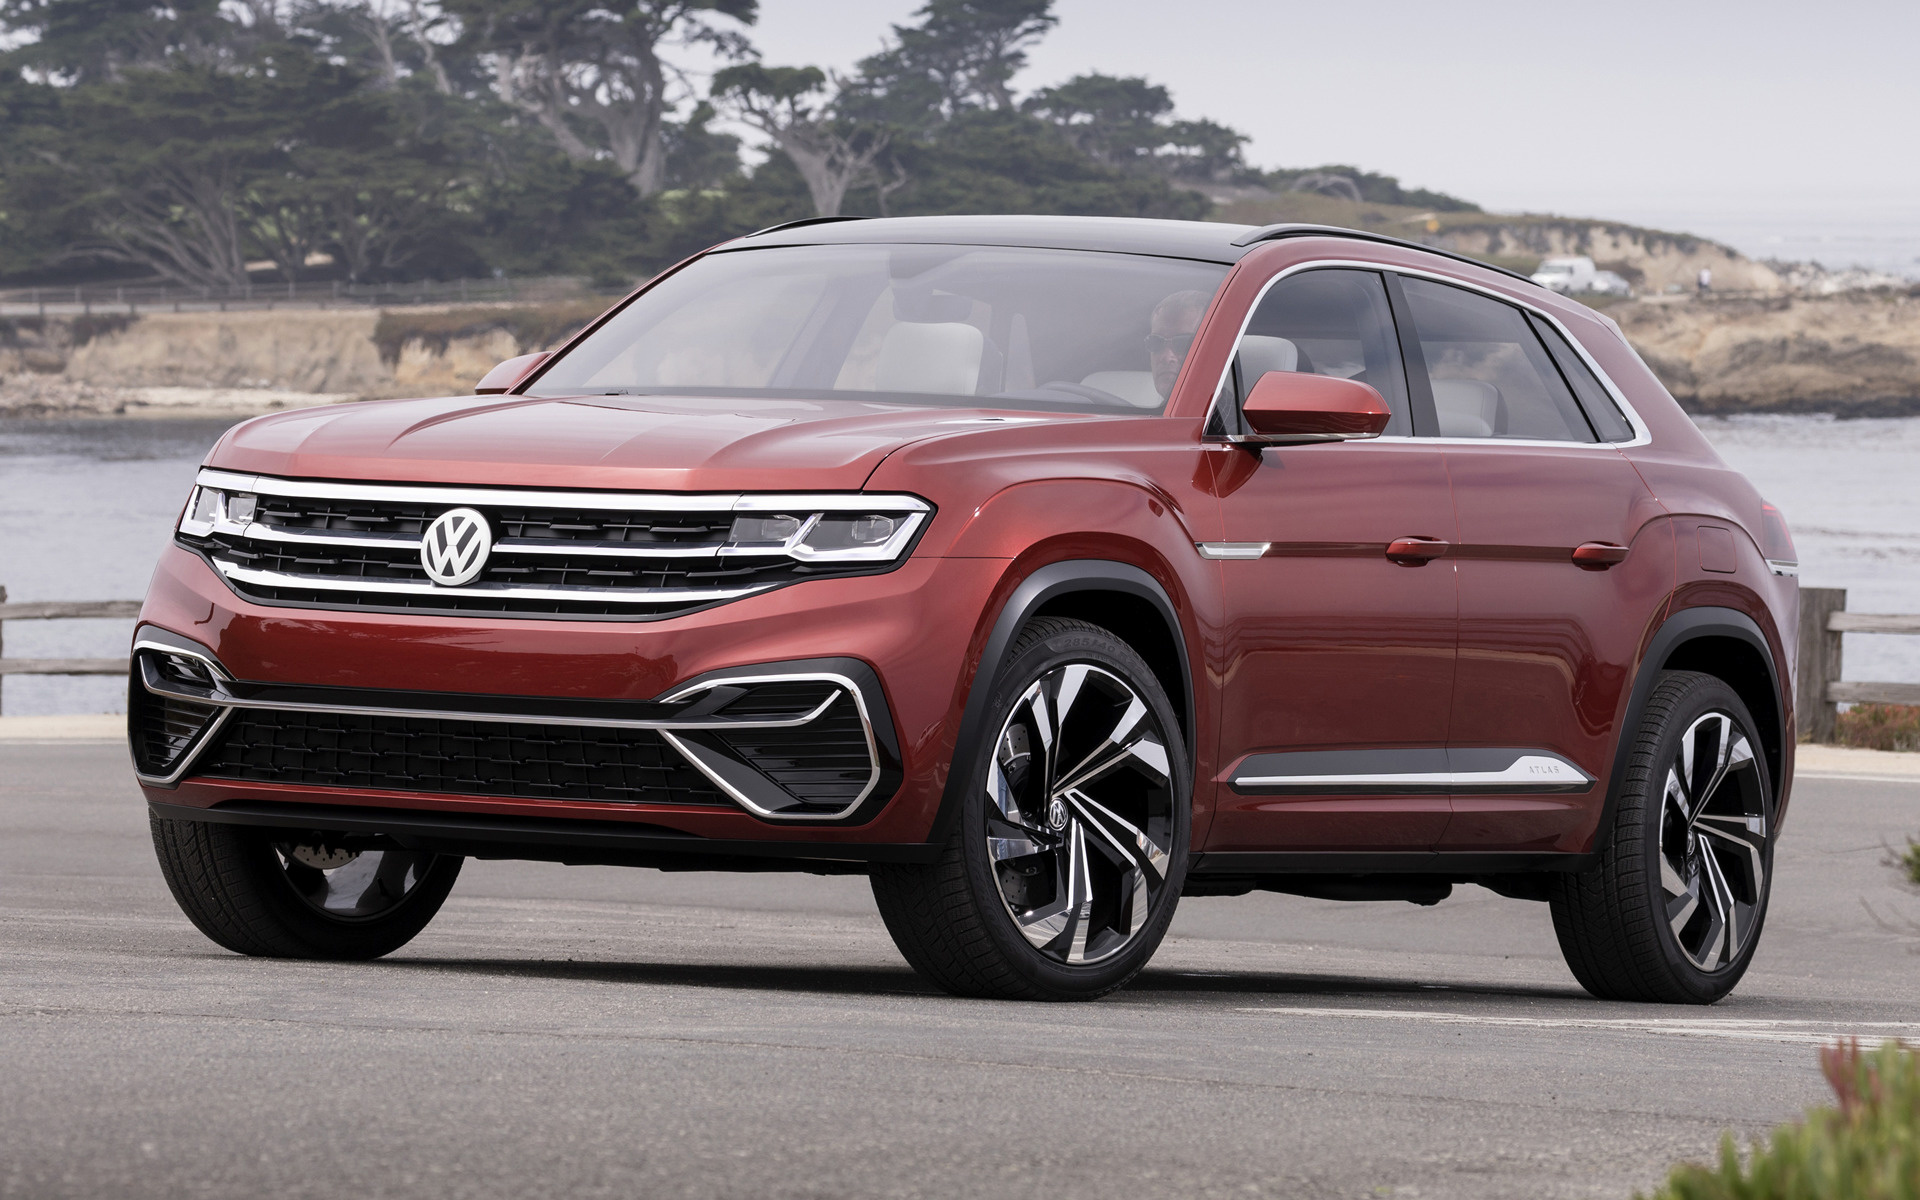 2018 Volkswagen Atlas Cross Sport Concept - Wallpapers and ...